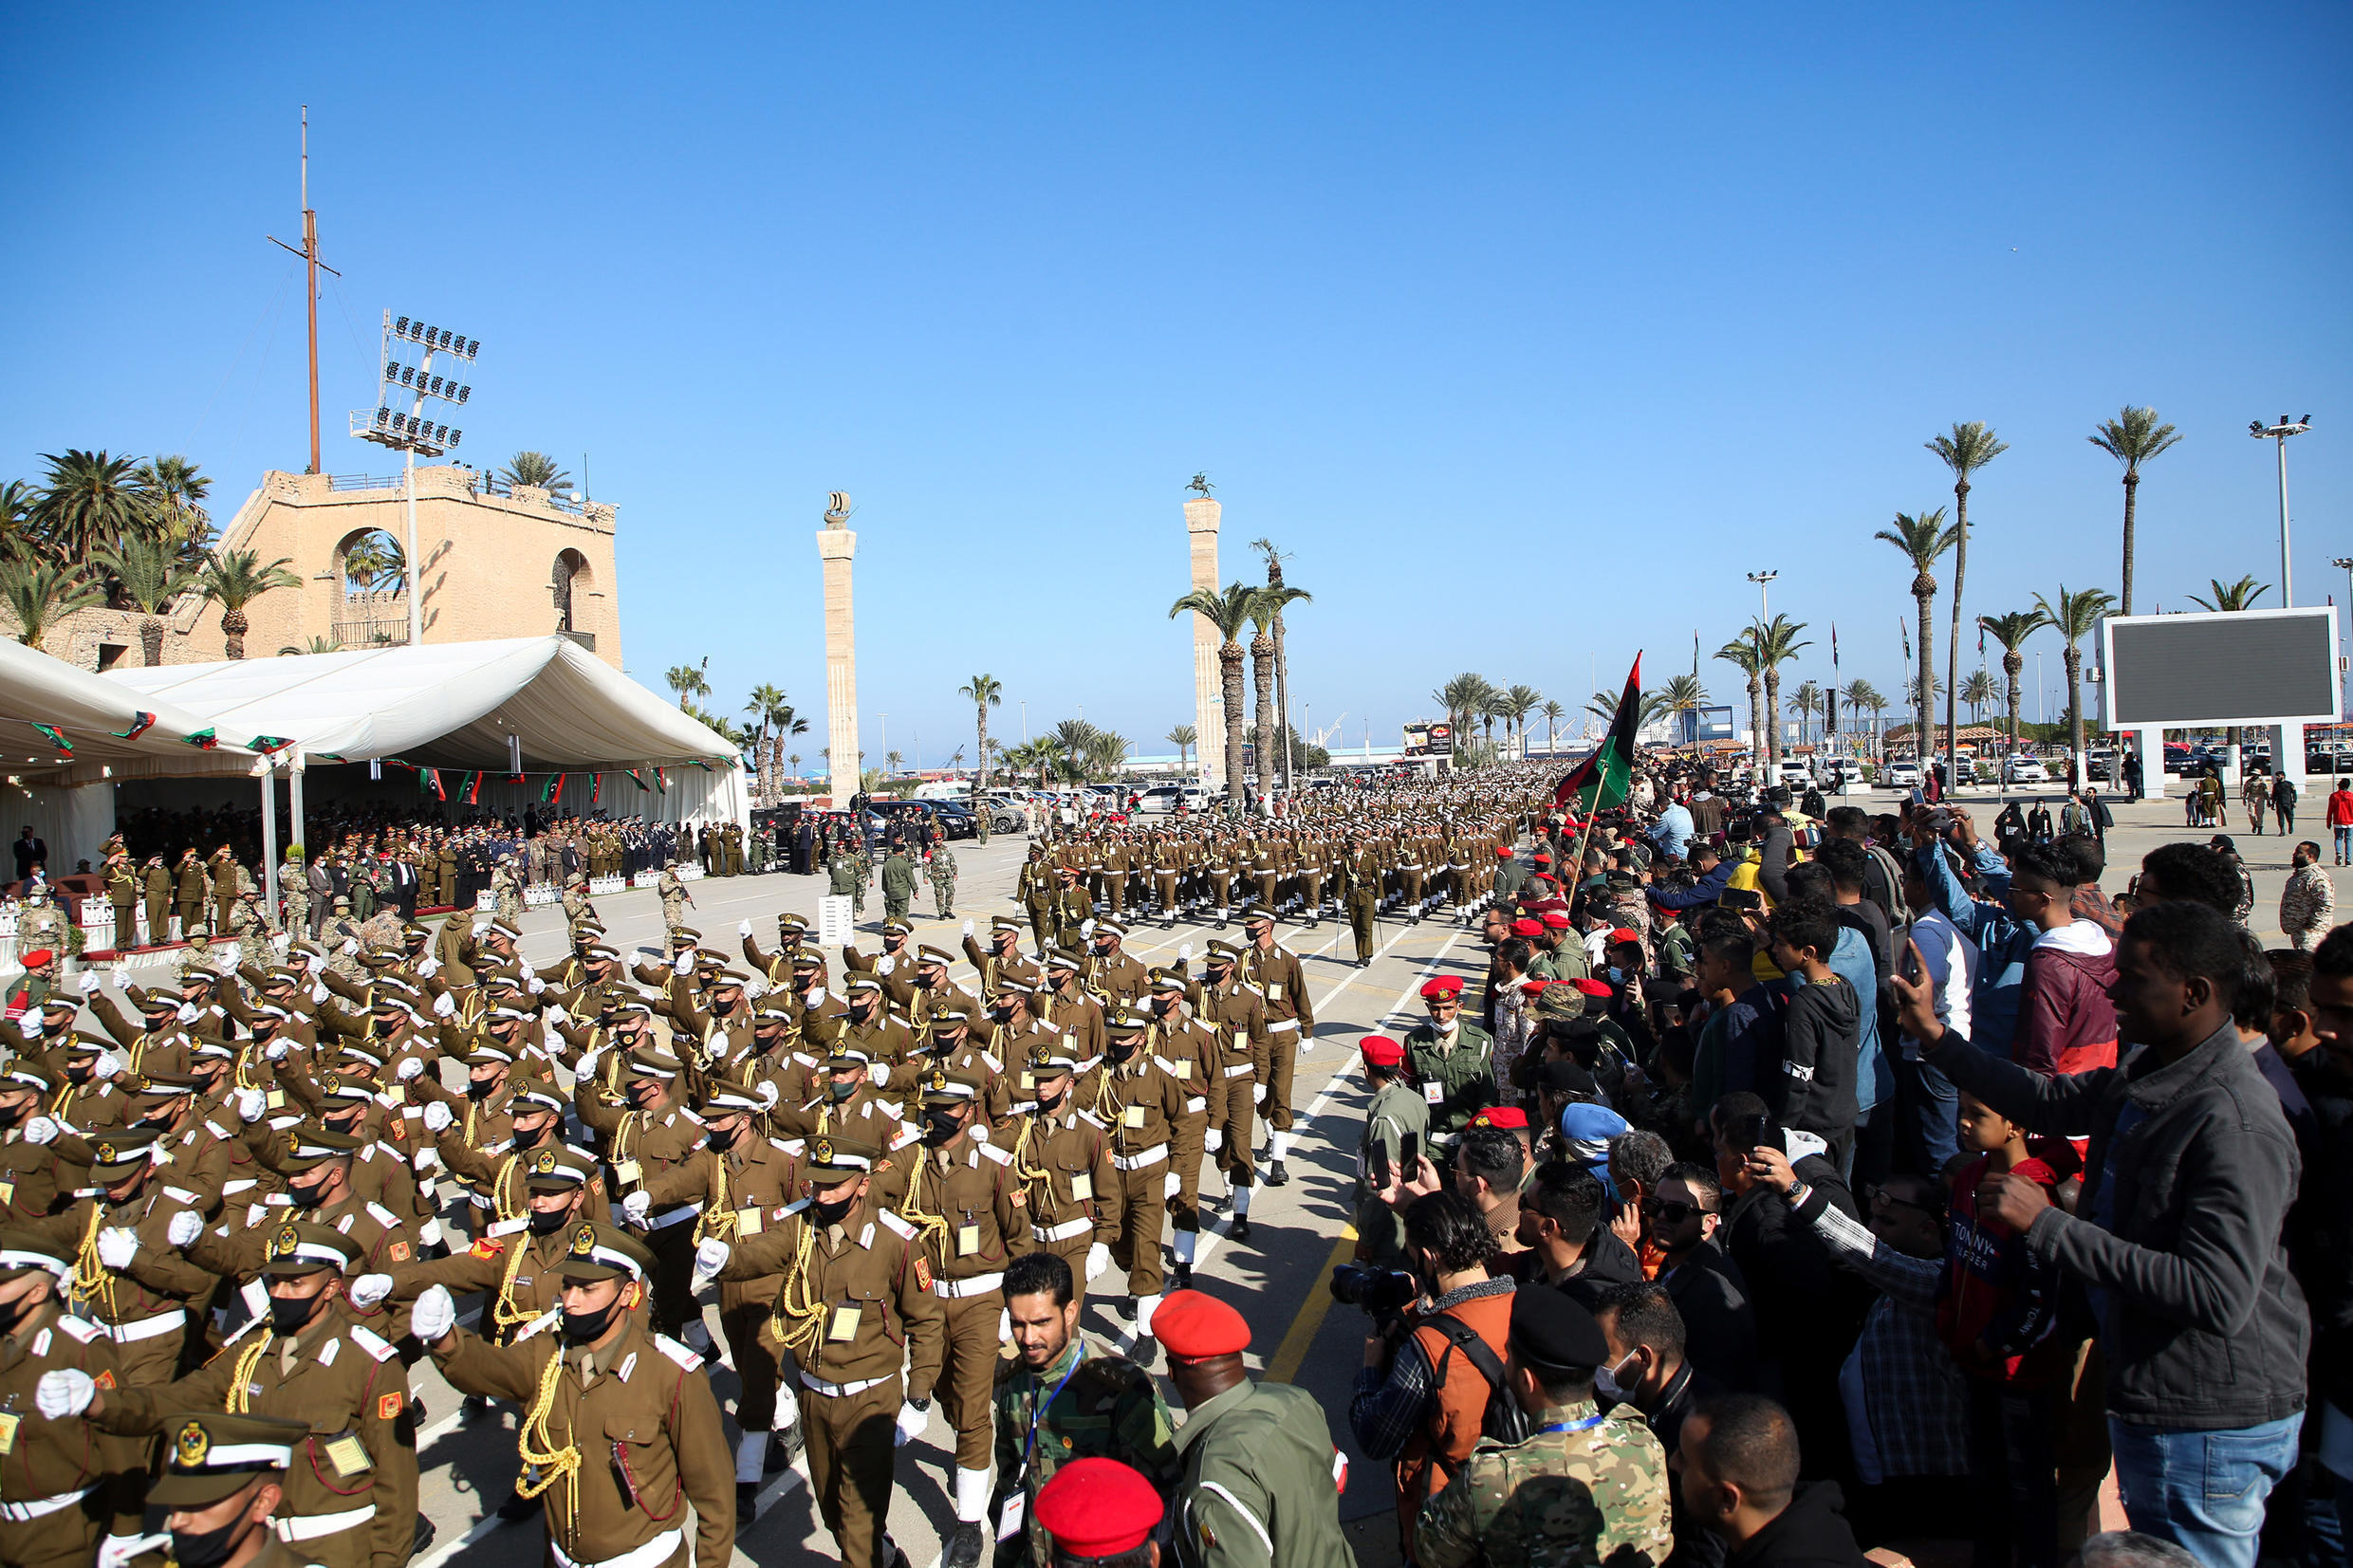 Libyan troops take part in a parade in Tripoli to mark the anniversary of independence on December 24, 2020 amid a fragile ceasefire in the country